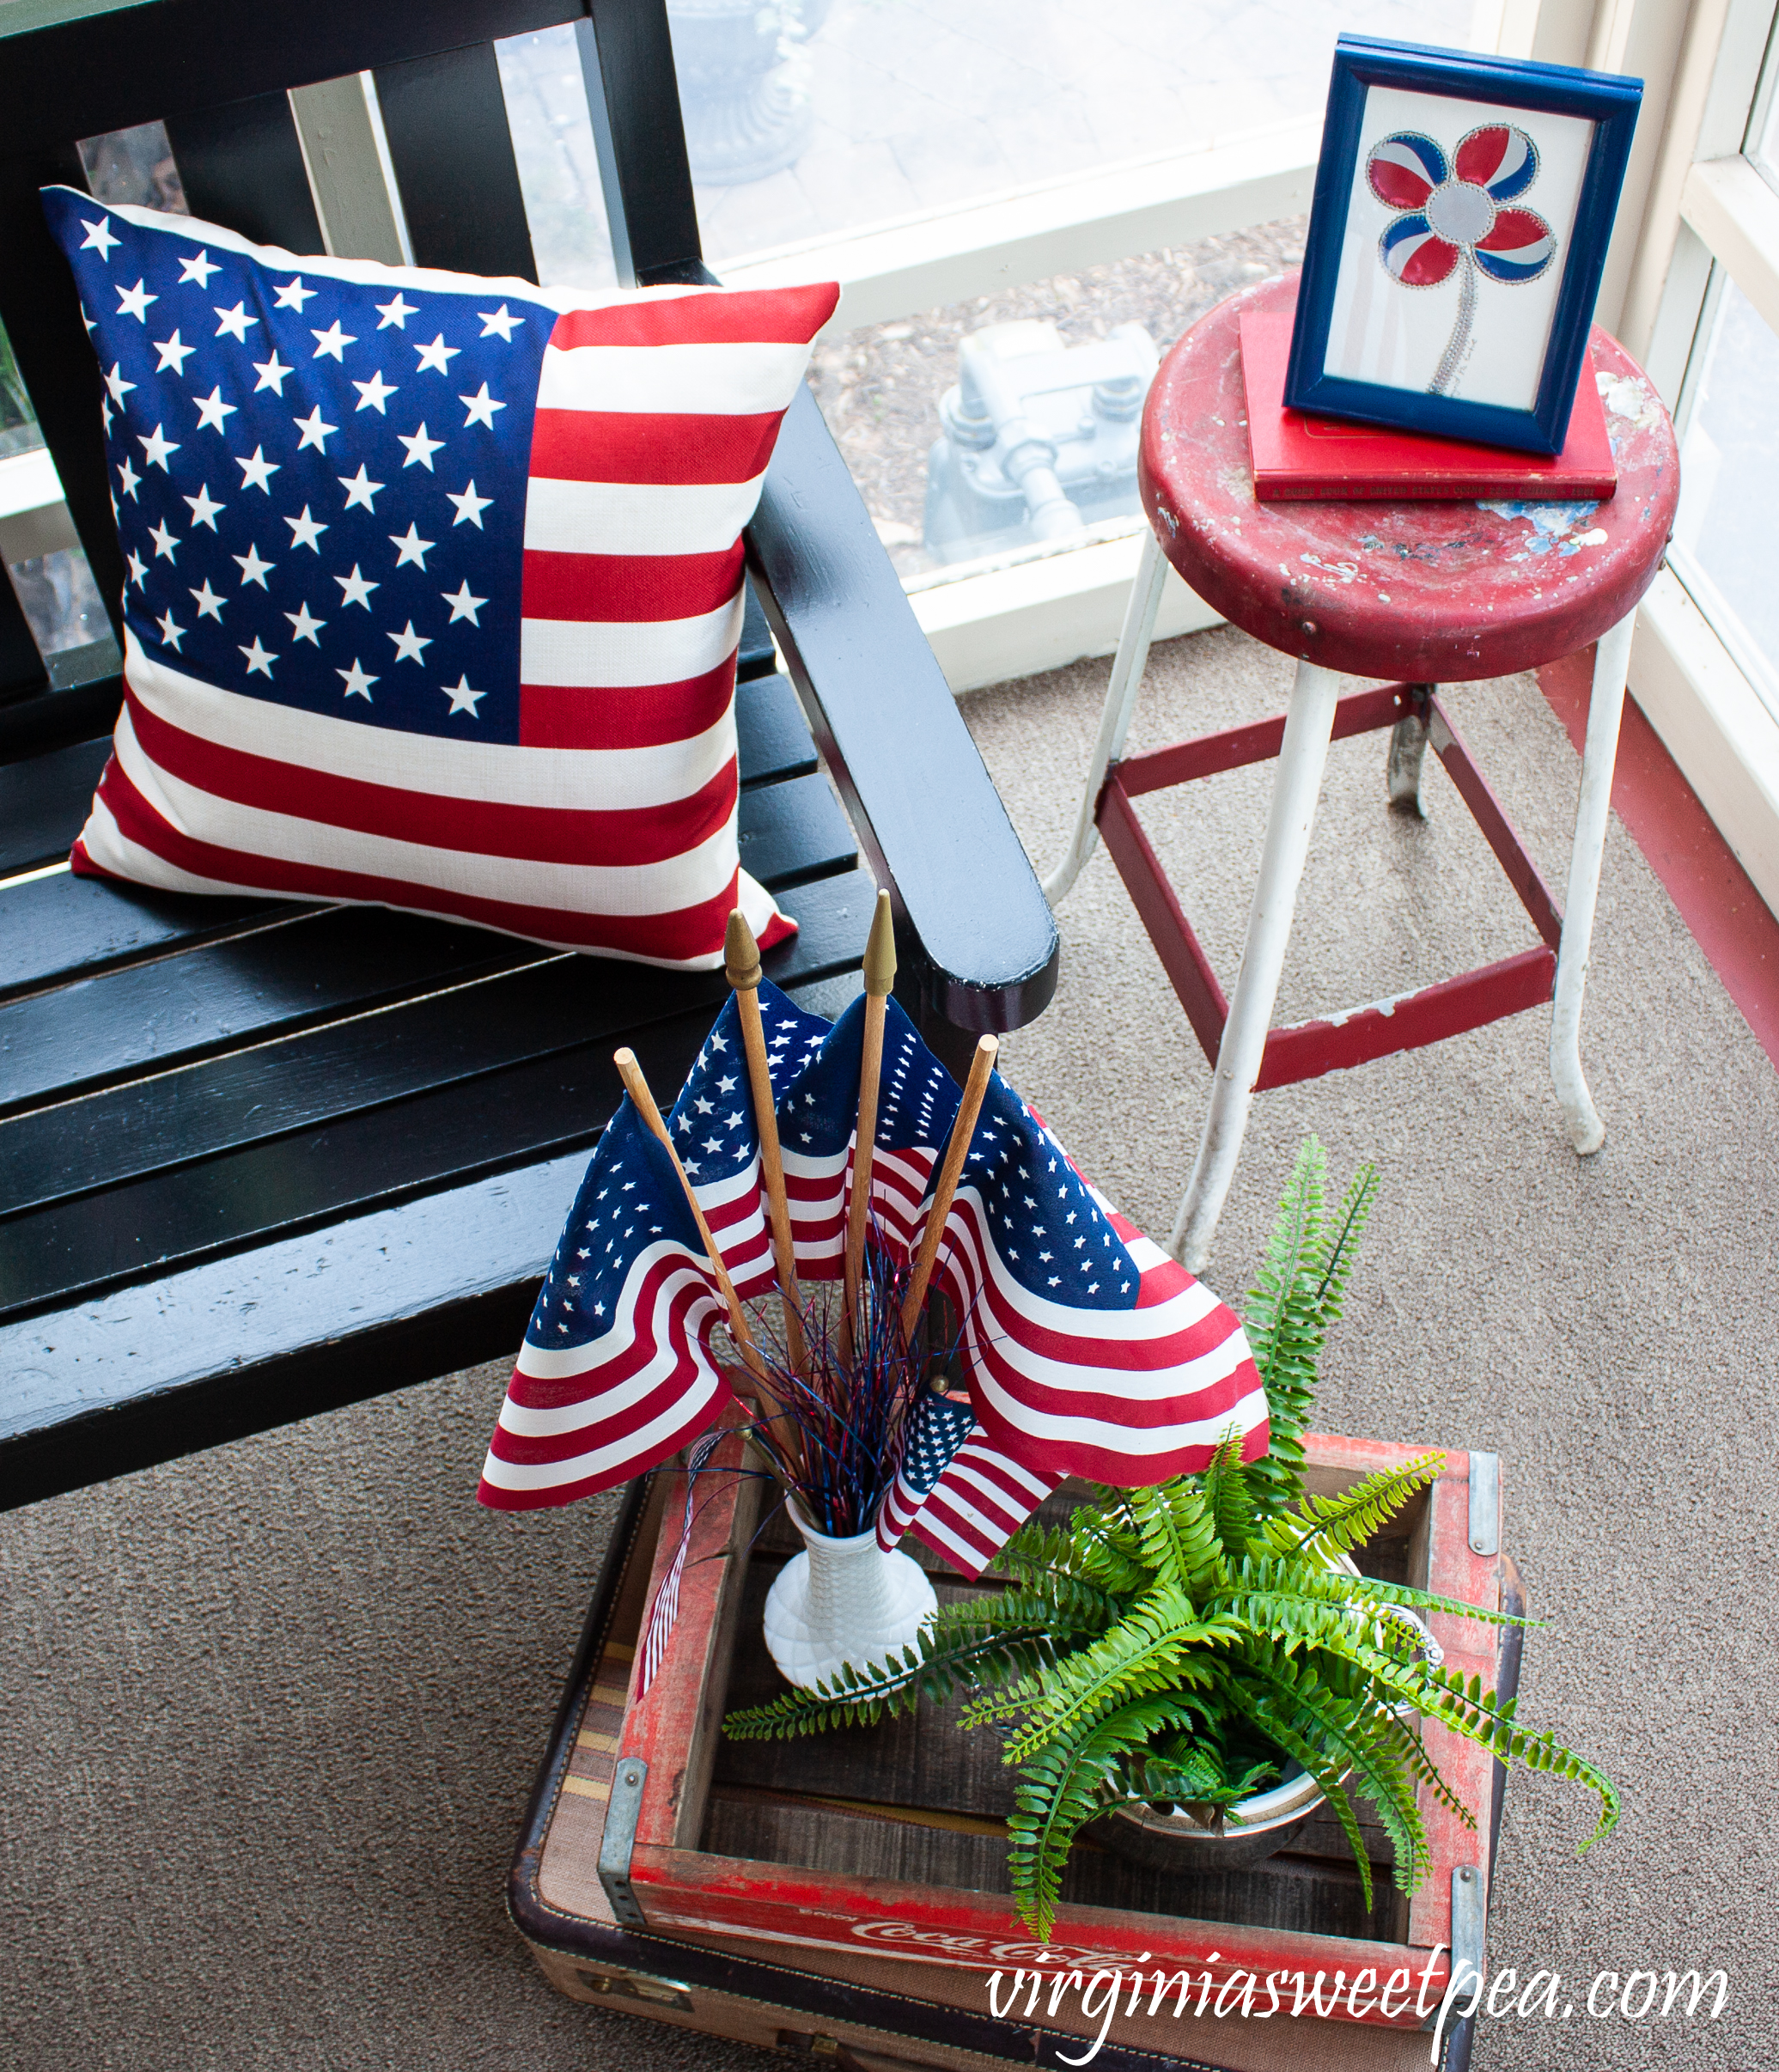 Patriotic decorations on a porch